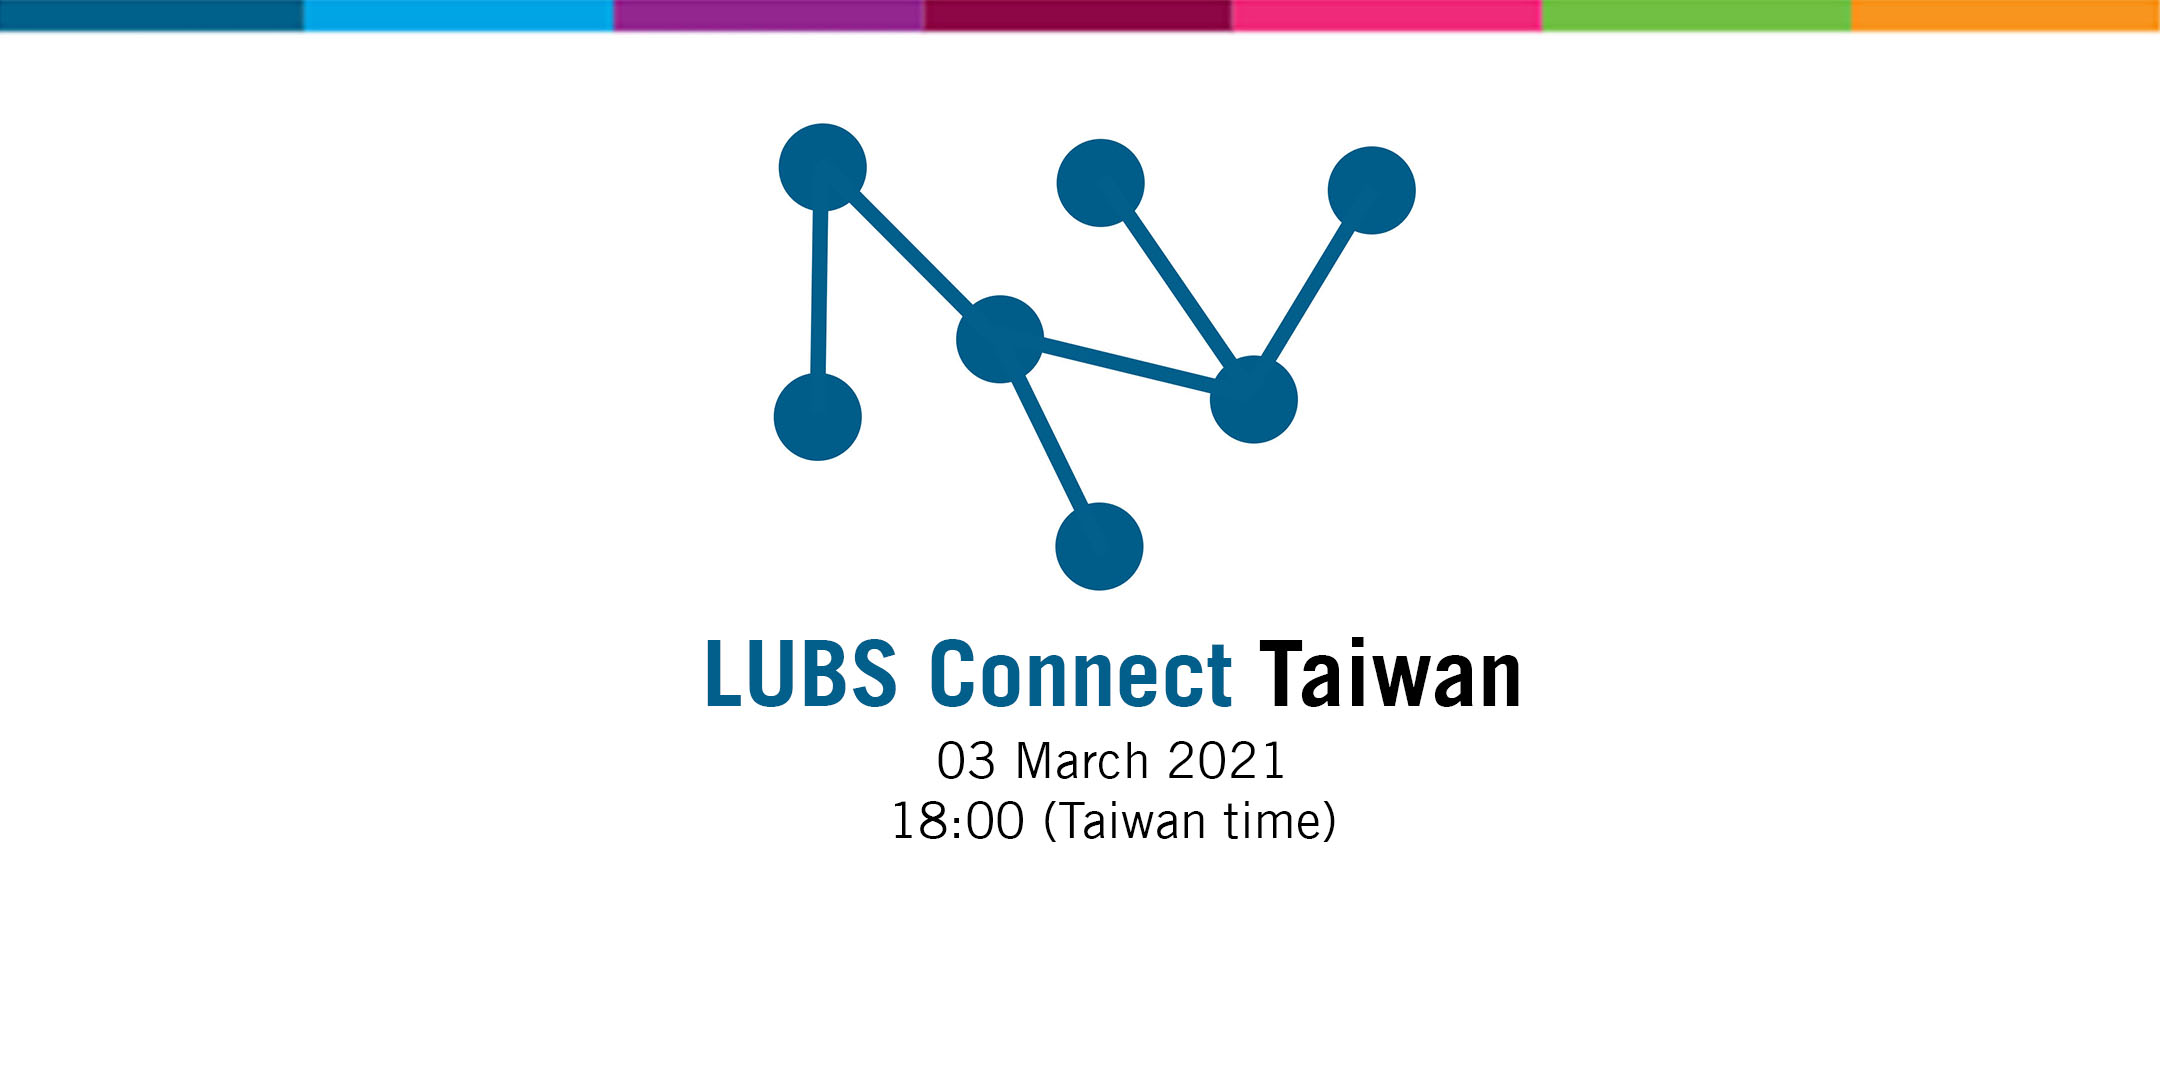 LUBS Connect Taiwan